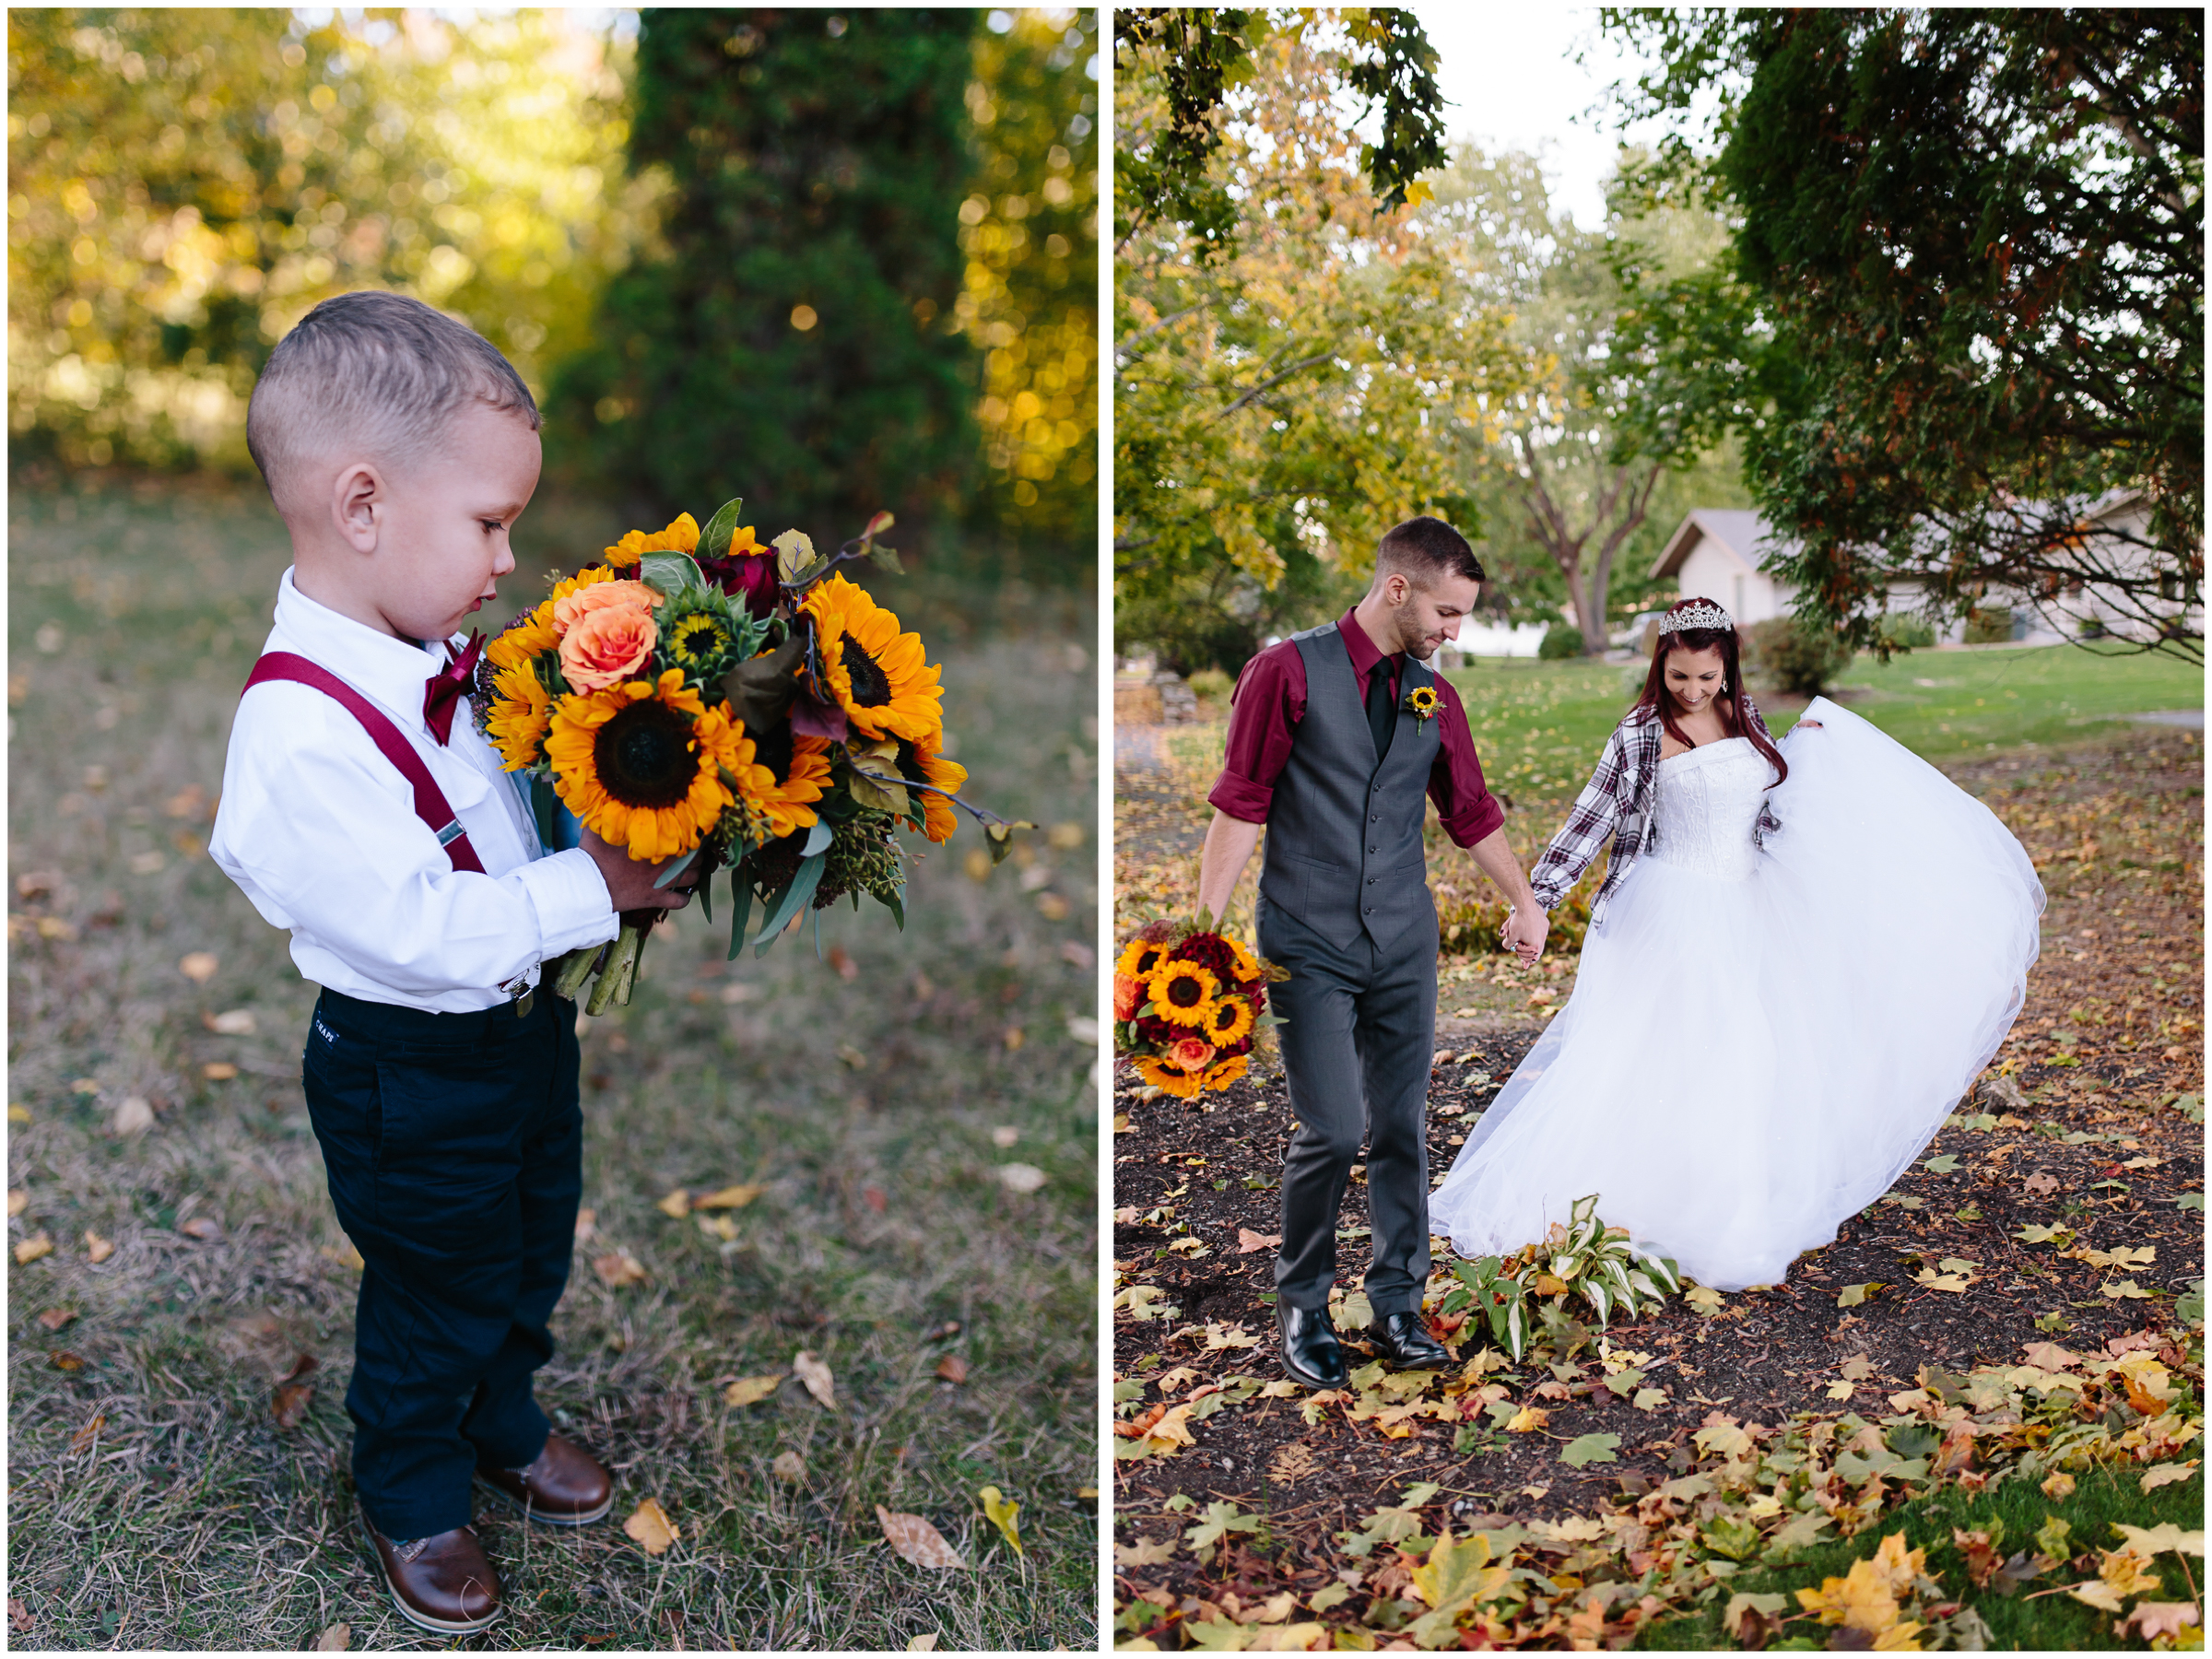 Ashleigh Laureen Photography Journalistic Fall Wedding in Hooksett, New Hampshire, Bride and Groom and Cute Ringbearer